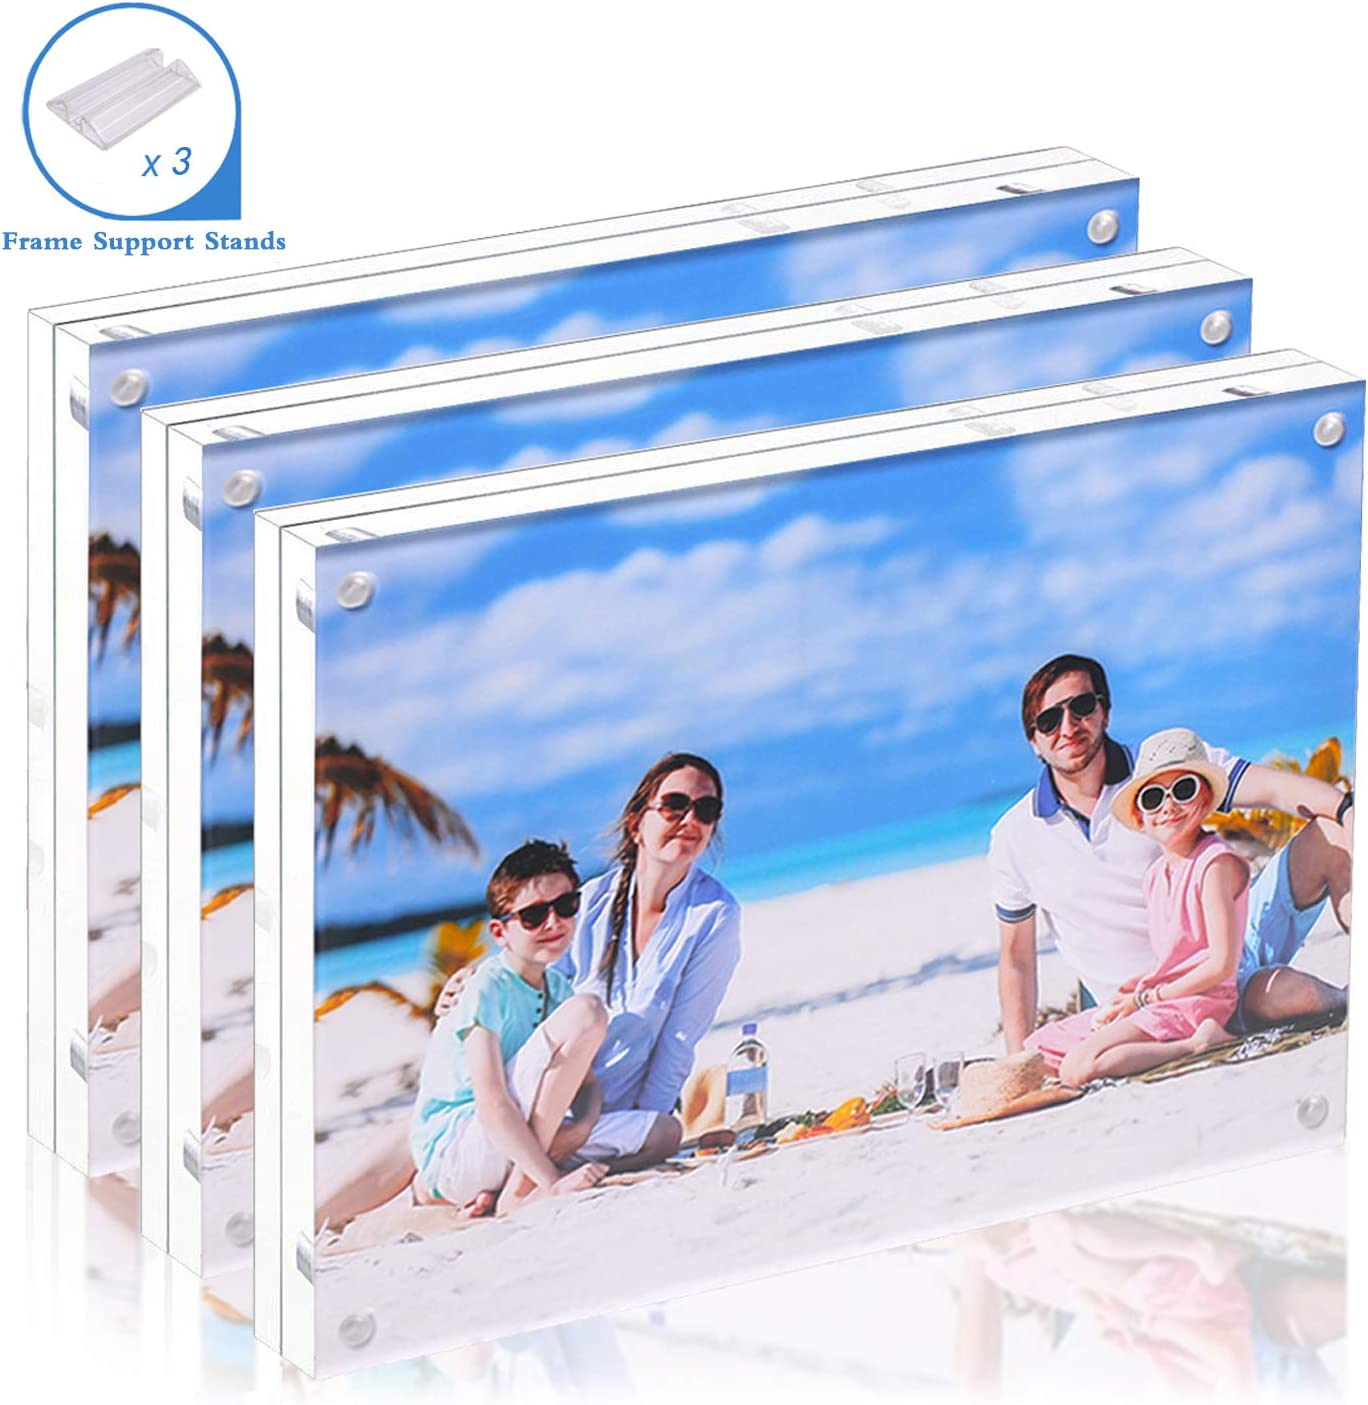 Acrylic Photo Frame 5x7-3 Pack Clear Double Sided Magnetic Picture Frameless Desktop Display with Photo Frame Support Stand Best Gift for Family, Baby, Document Photo Frames- Free Soft Microfiber